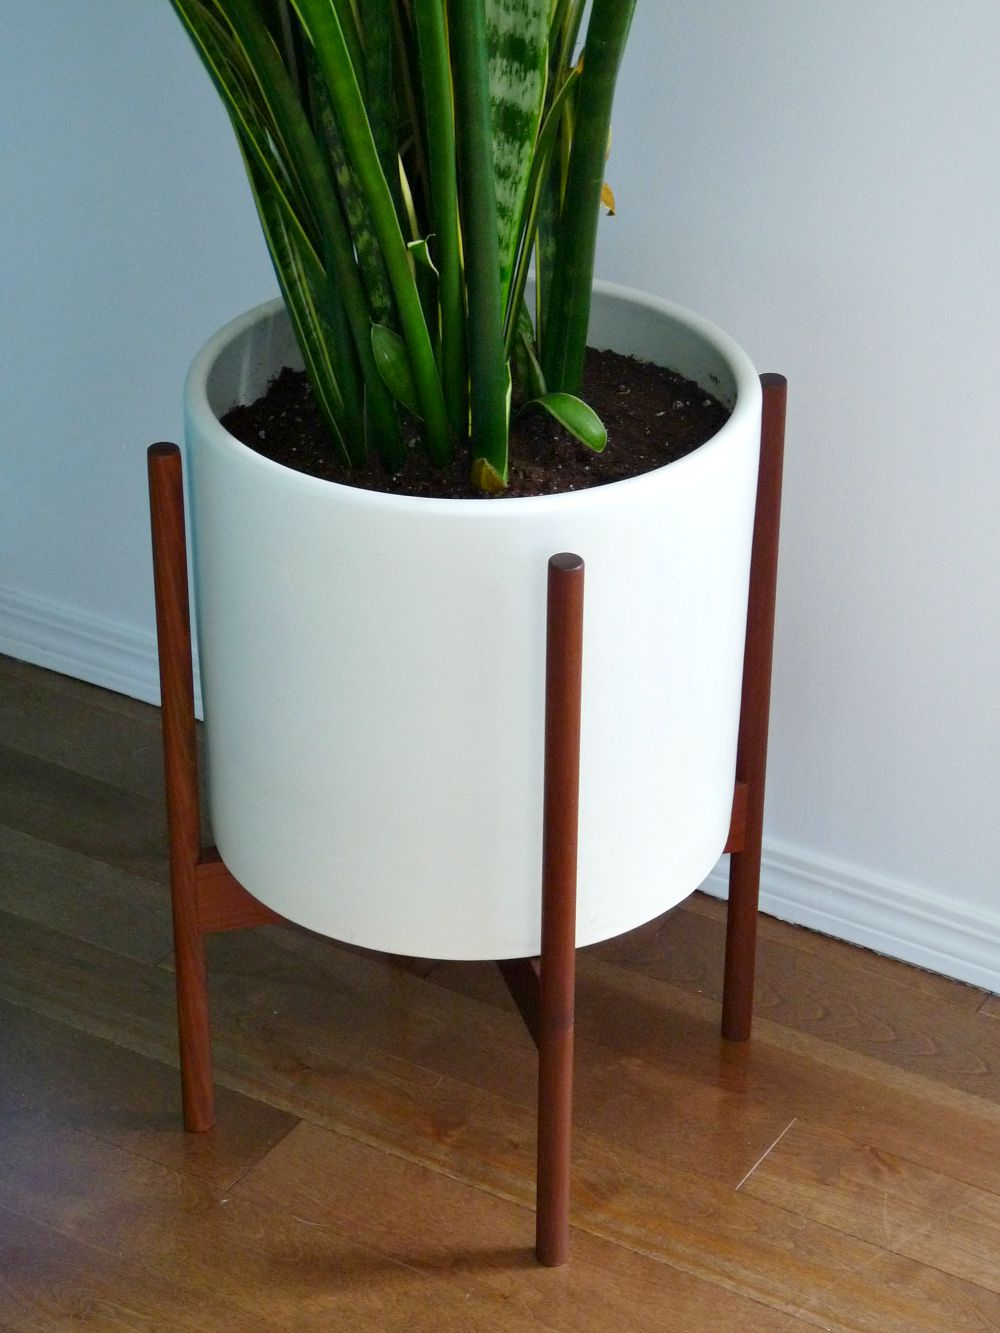 Modernica case study planter review